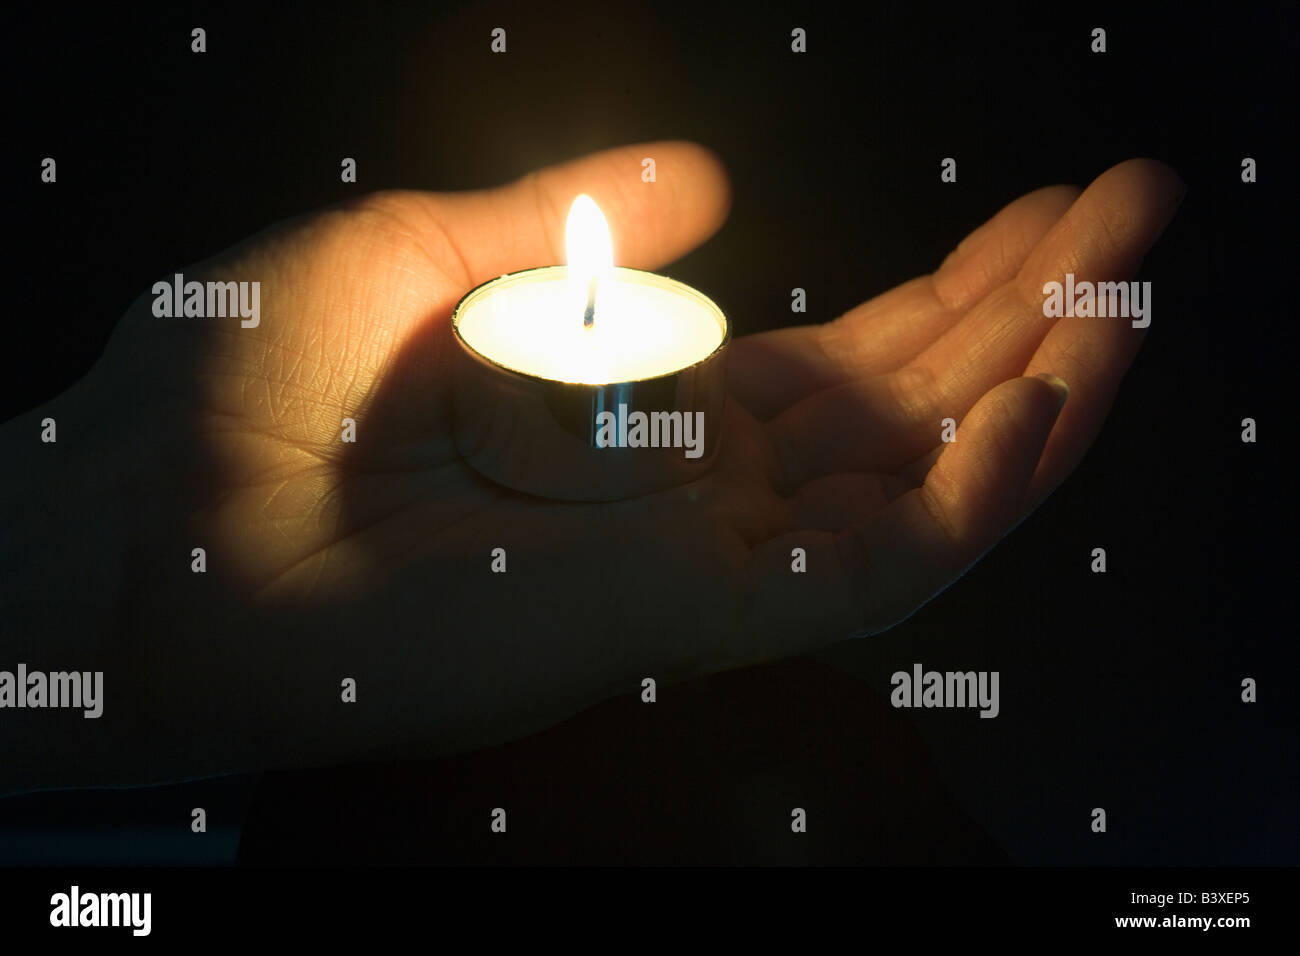 Close-Up Of Candle In The Palm Of A Persons Hand - Stock Image